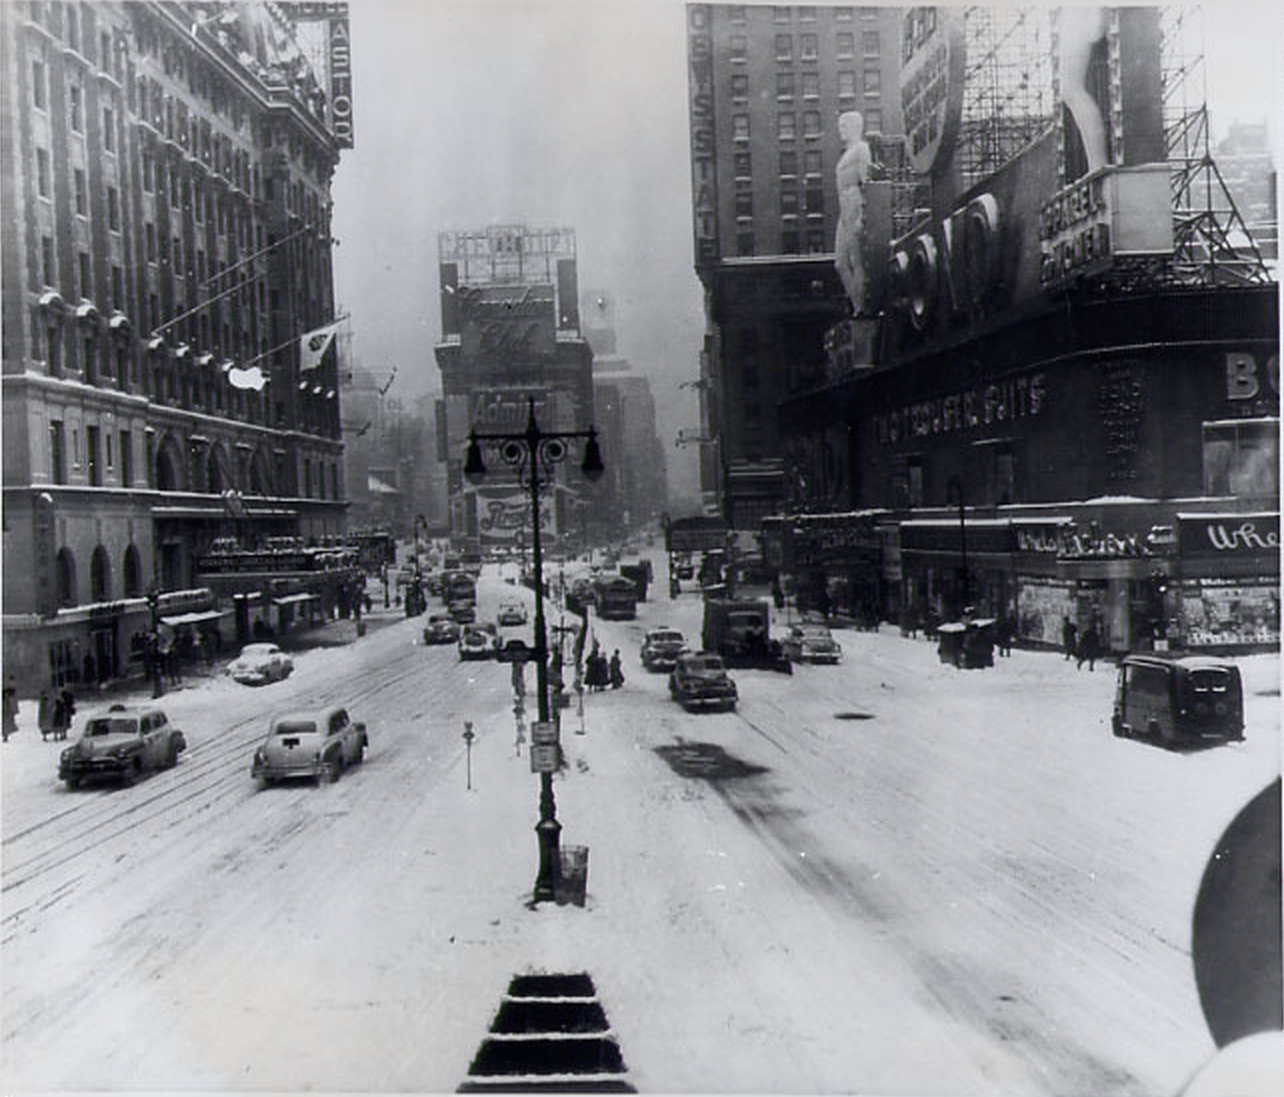 Times Square January 11, 1954 – Lots of Snow And Cold Weather